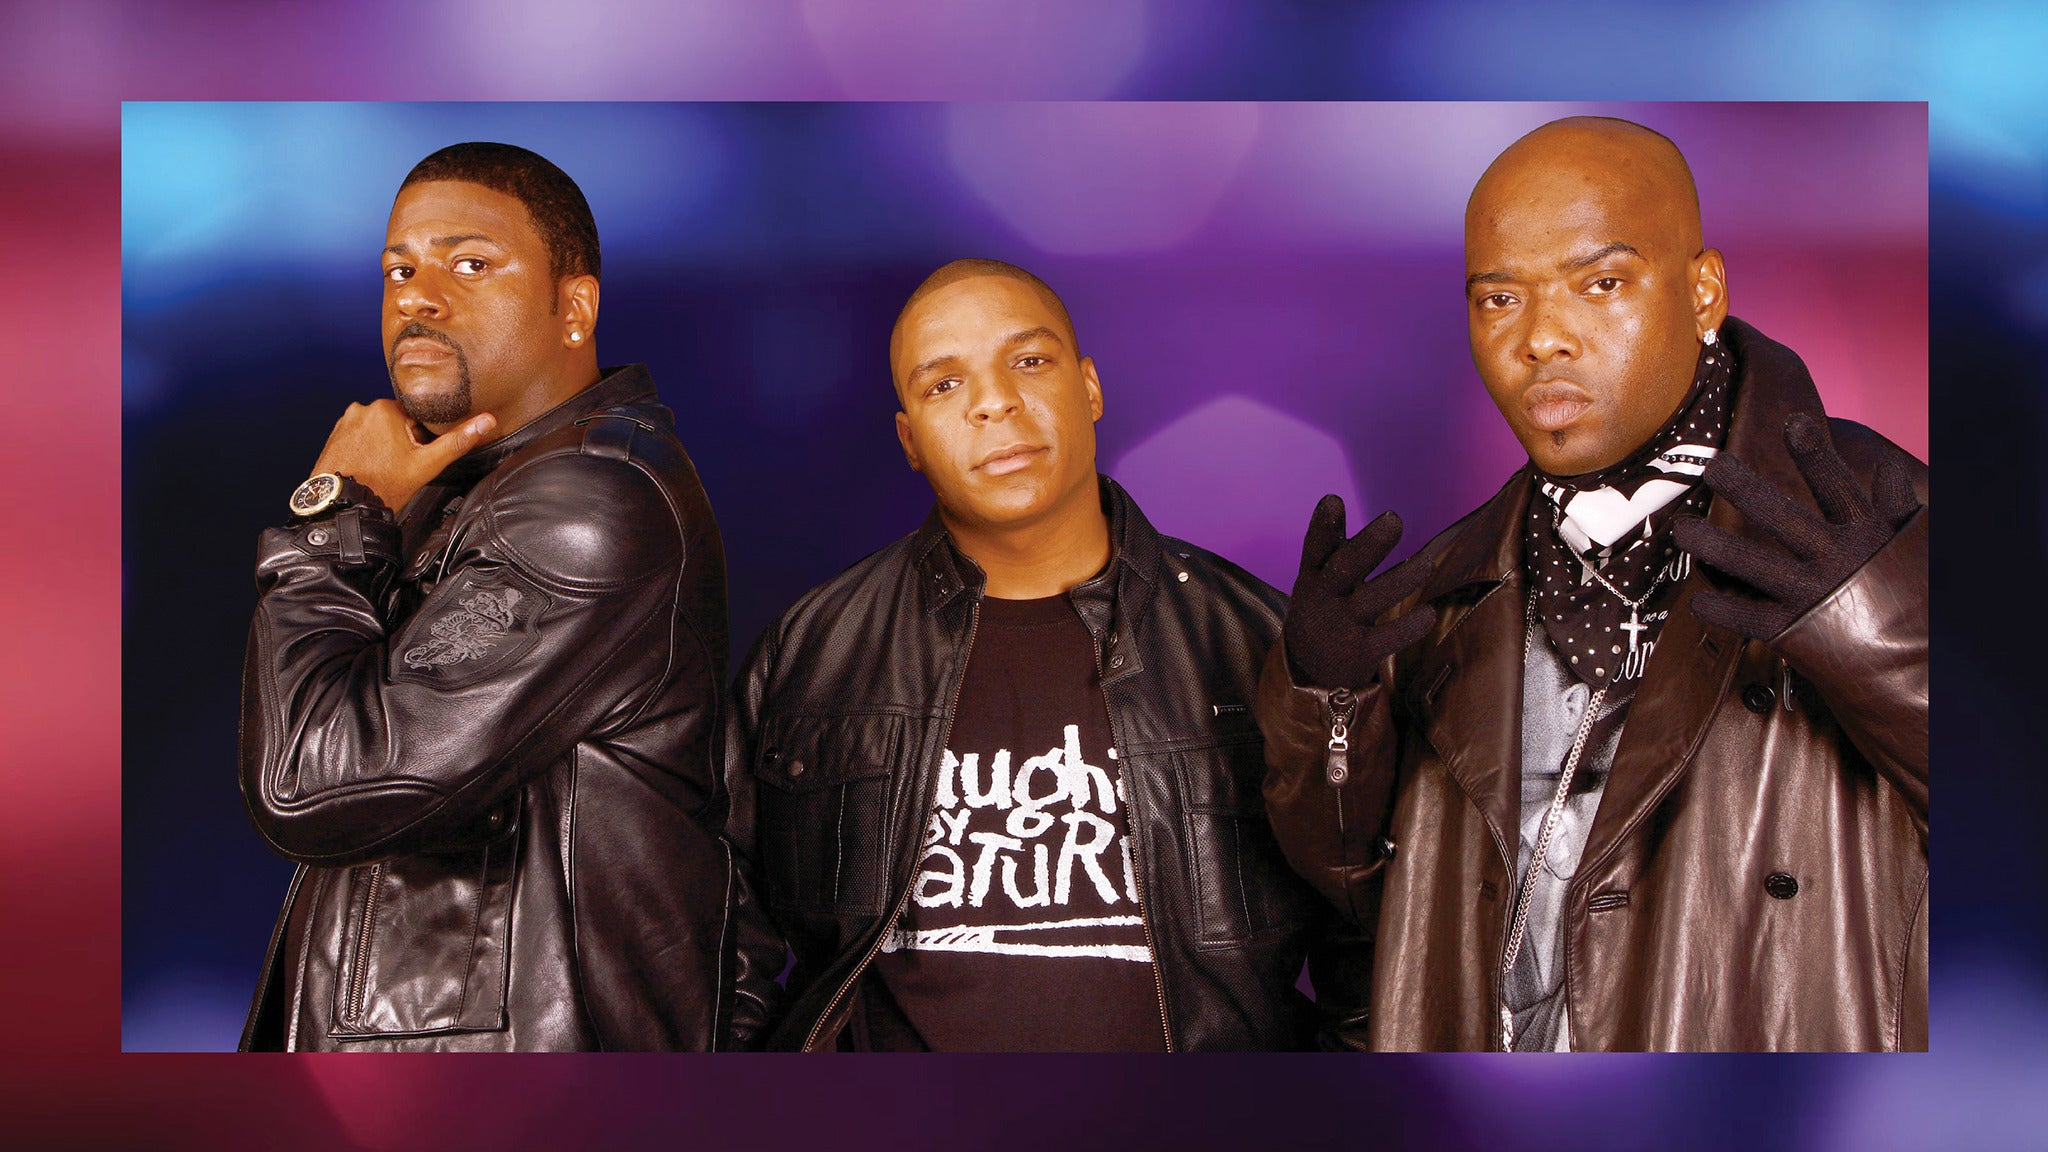 Naughty By Nature Meet & Greet Upgrade Package